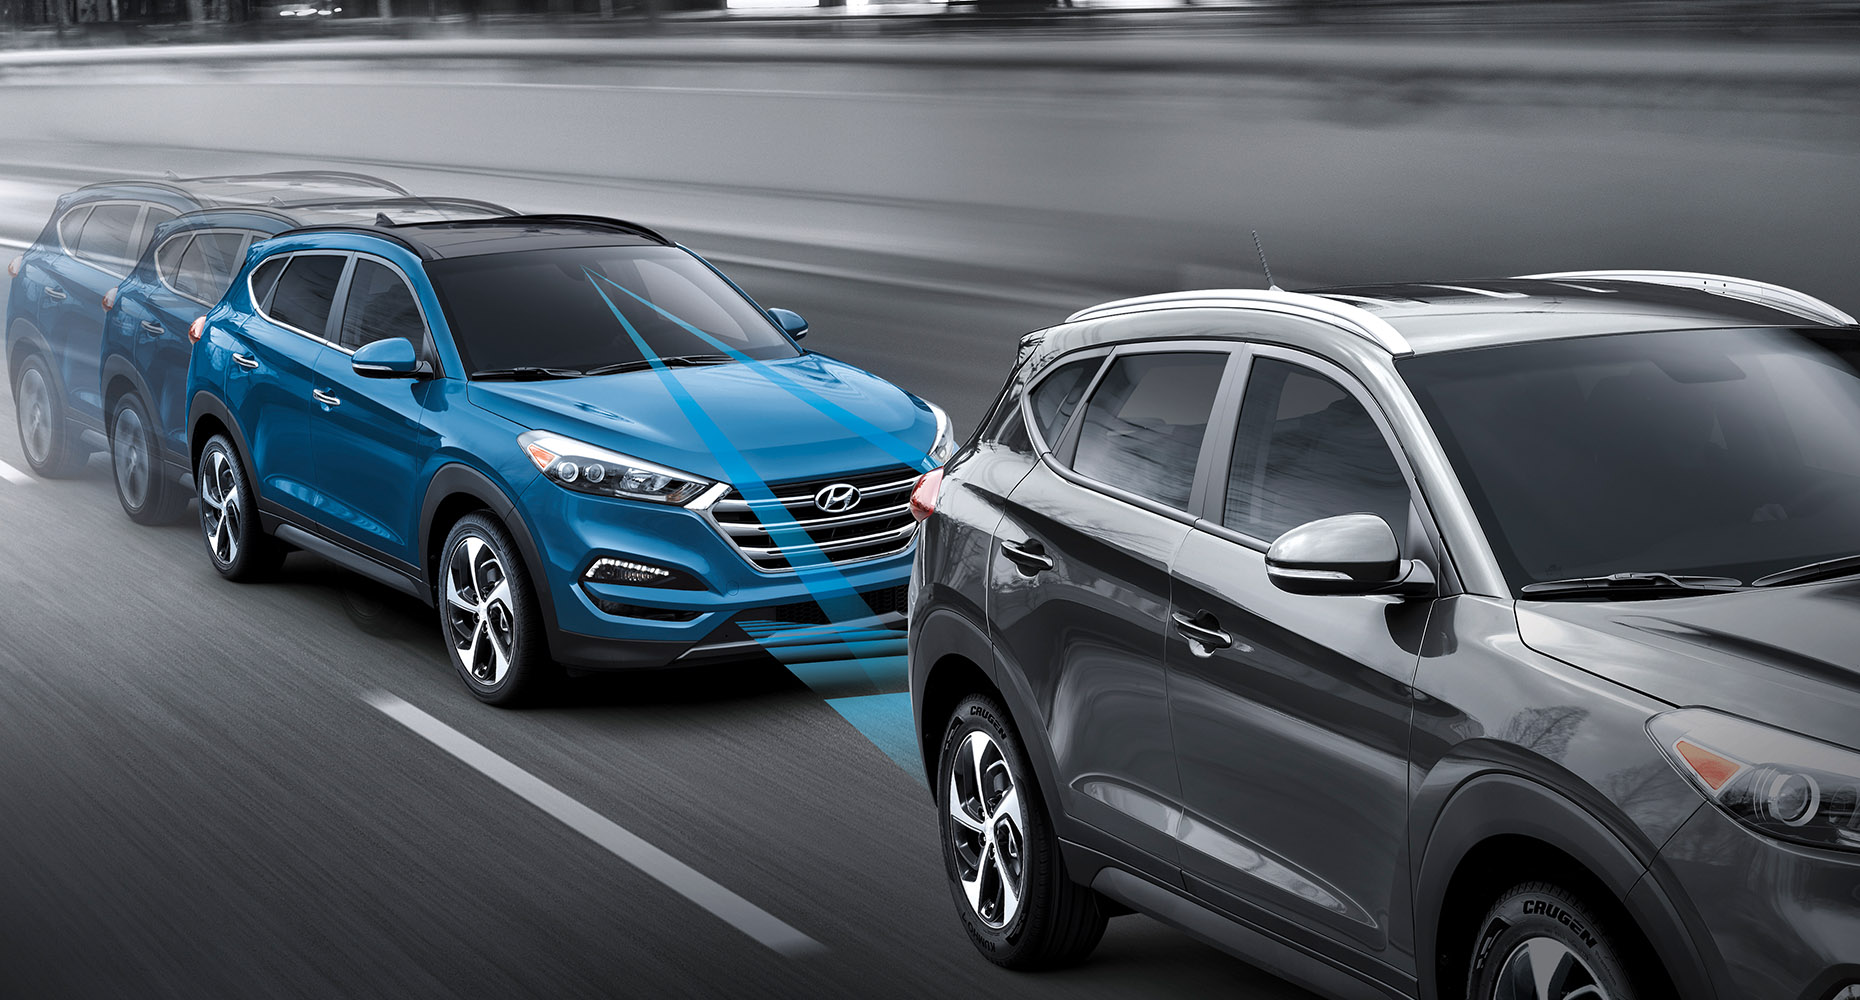 2018 Hyundai Tucson for sale near Portage La Prairie, MB